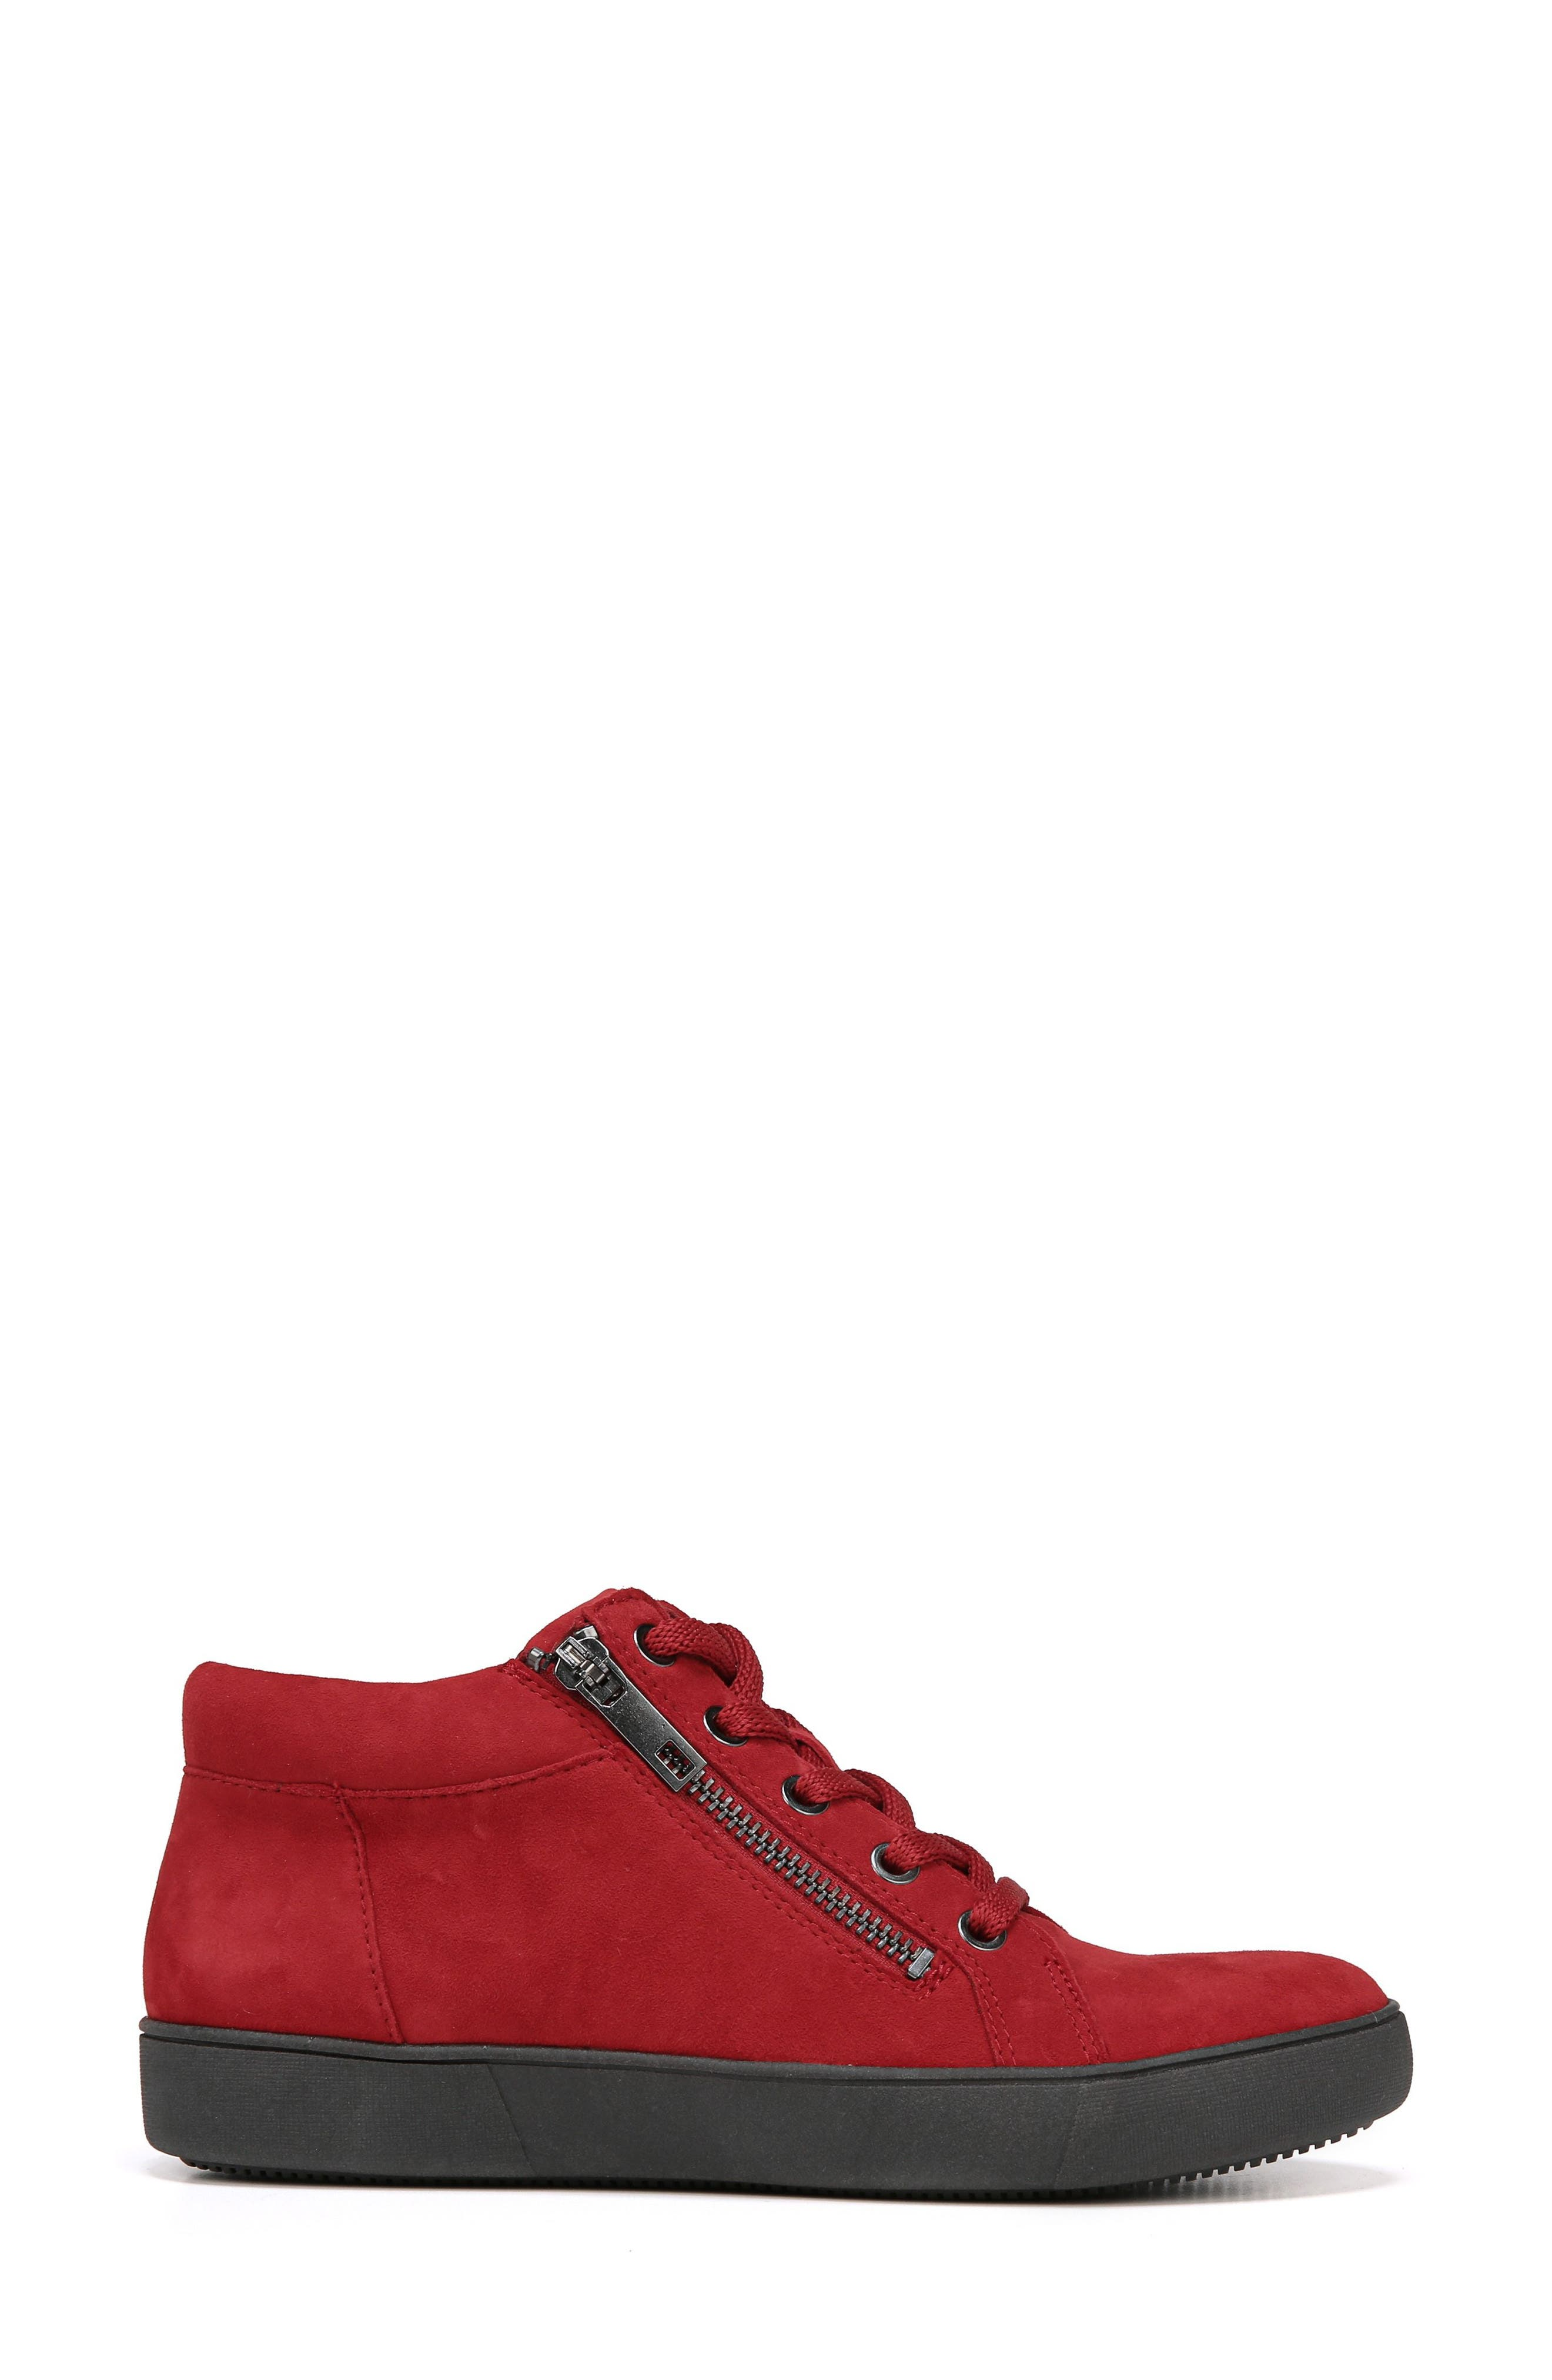 Motley Sneaker,                             Alternate thumbnail 3, color,                             Hot Sauce Suede